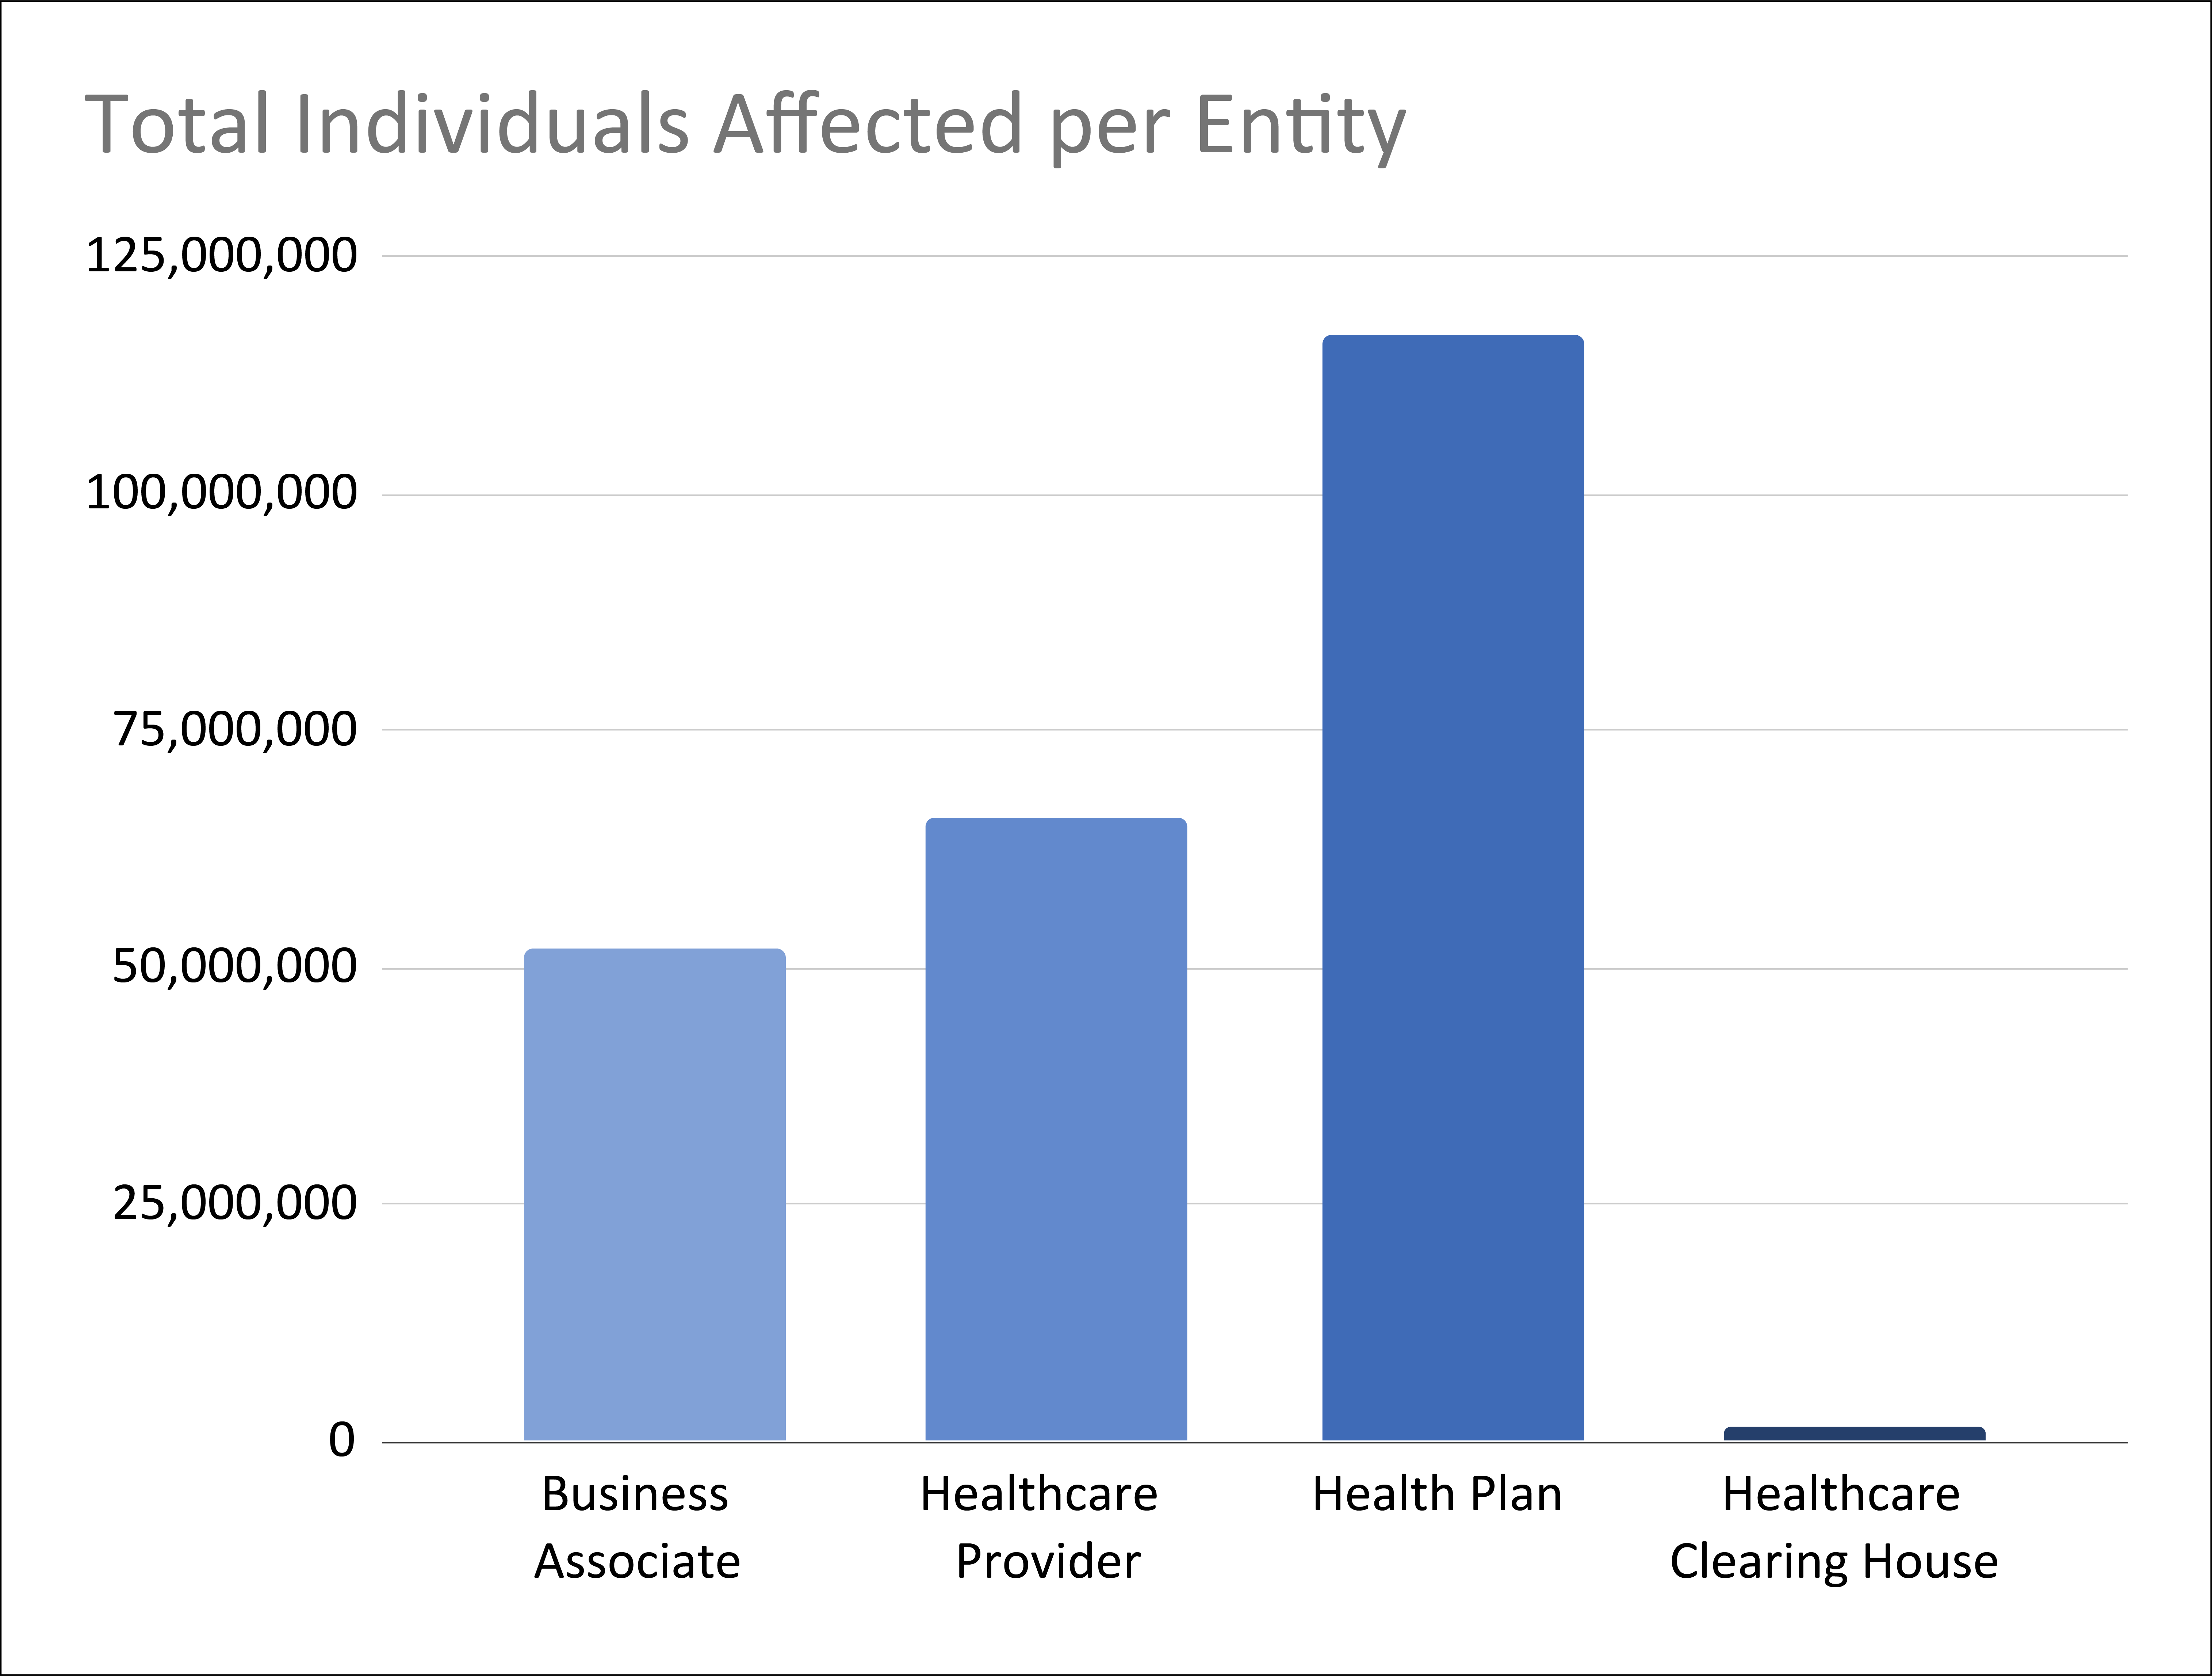 Number of Individuals Impacted per Entity Typed